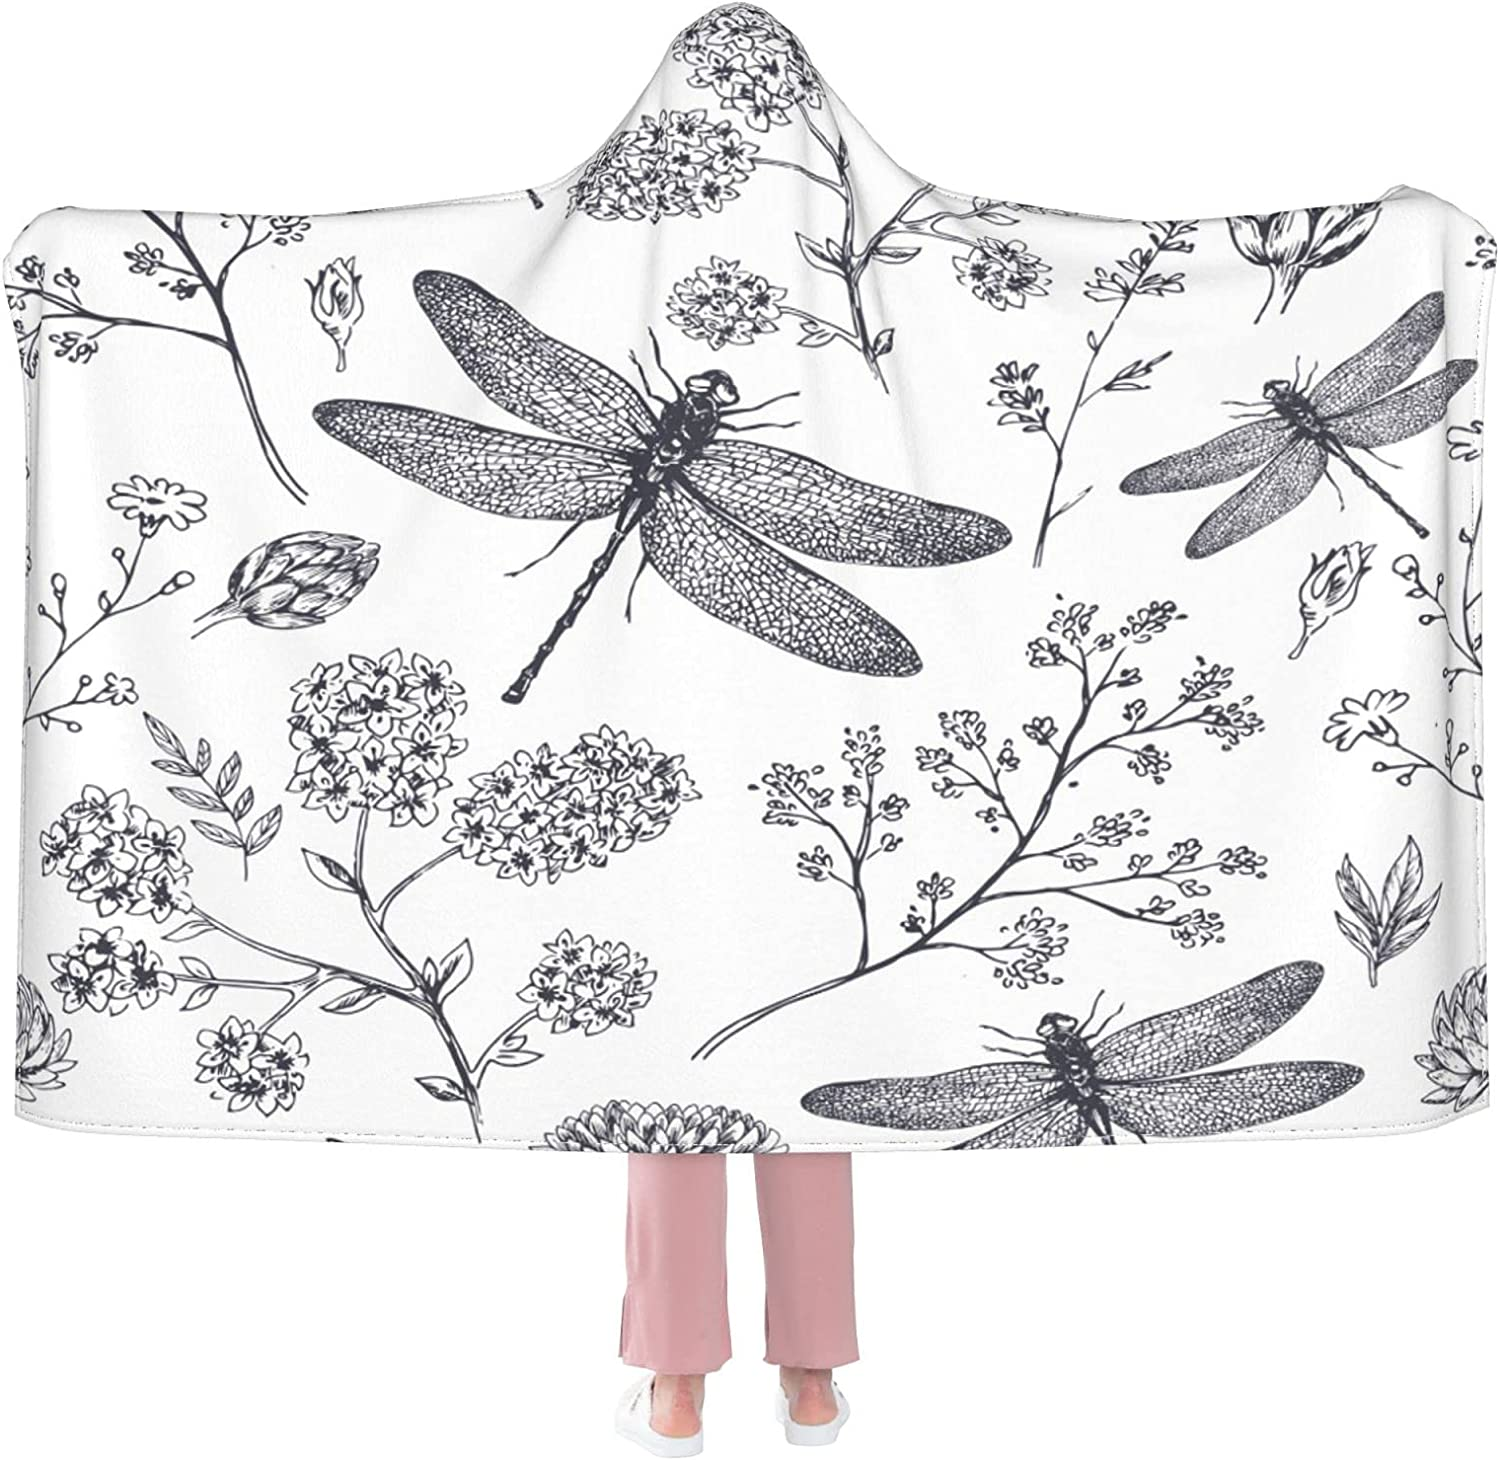 Dragonfly Limited time sale Wearable Blanket Flannel Soft Hooded Branded goods